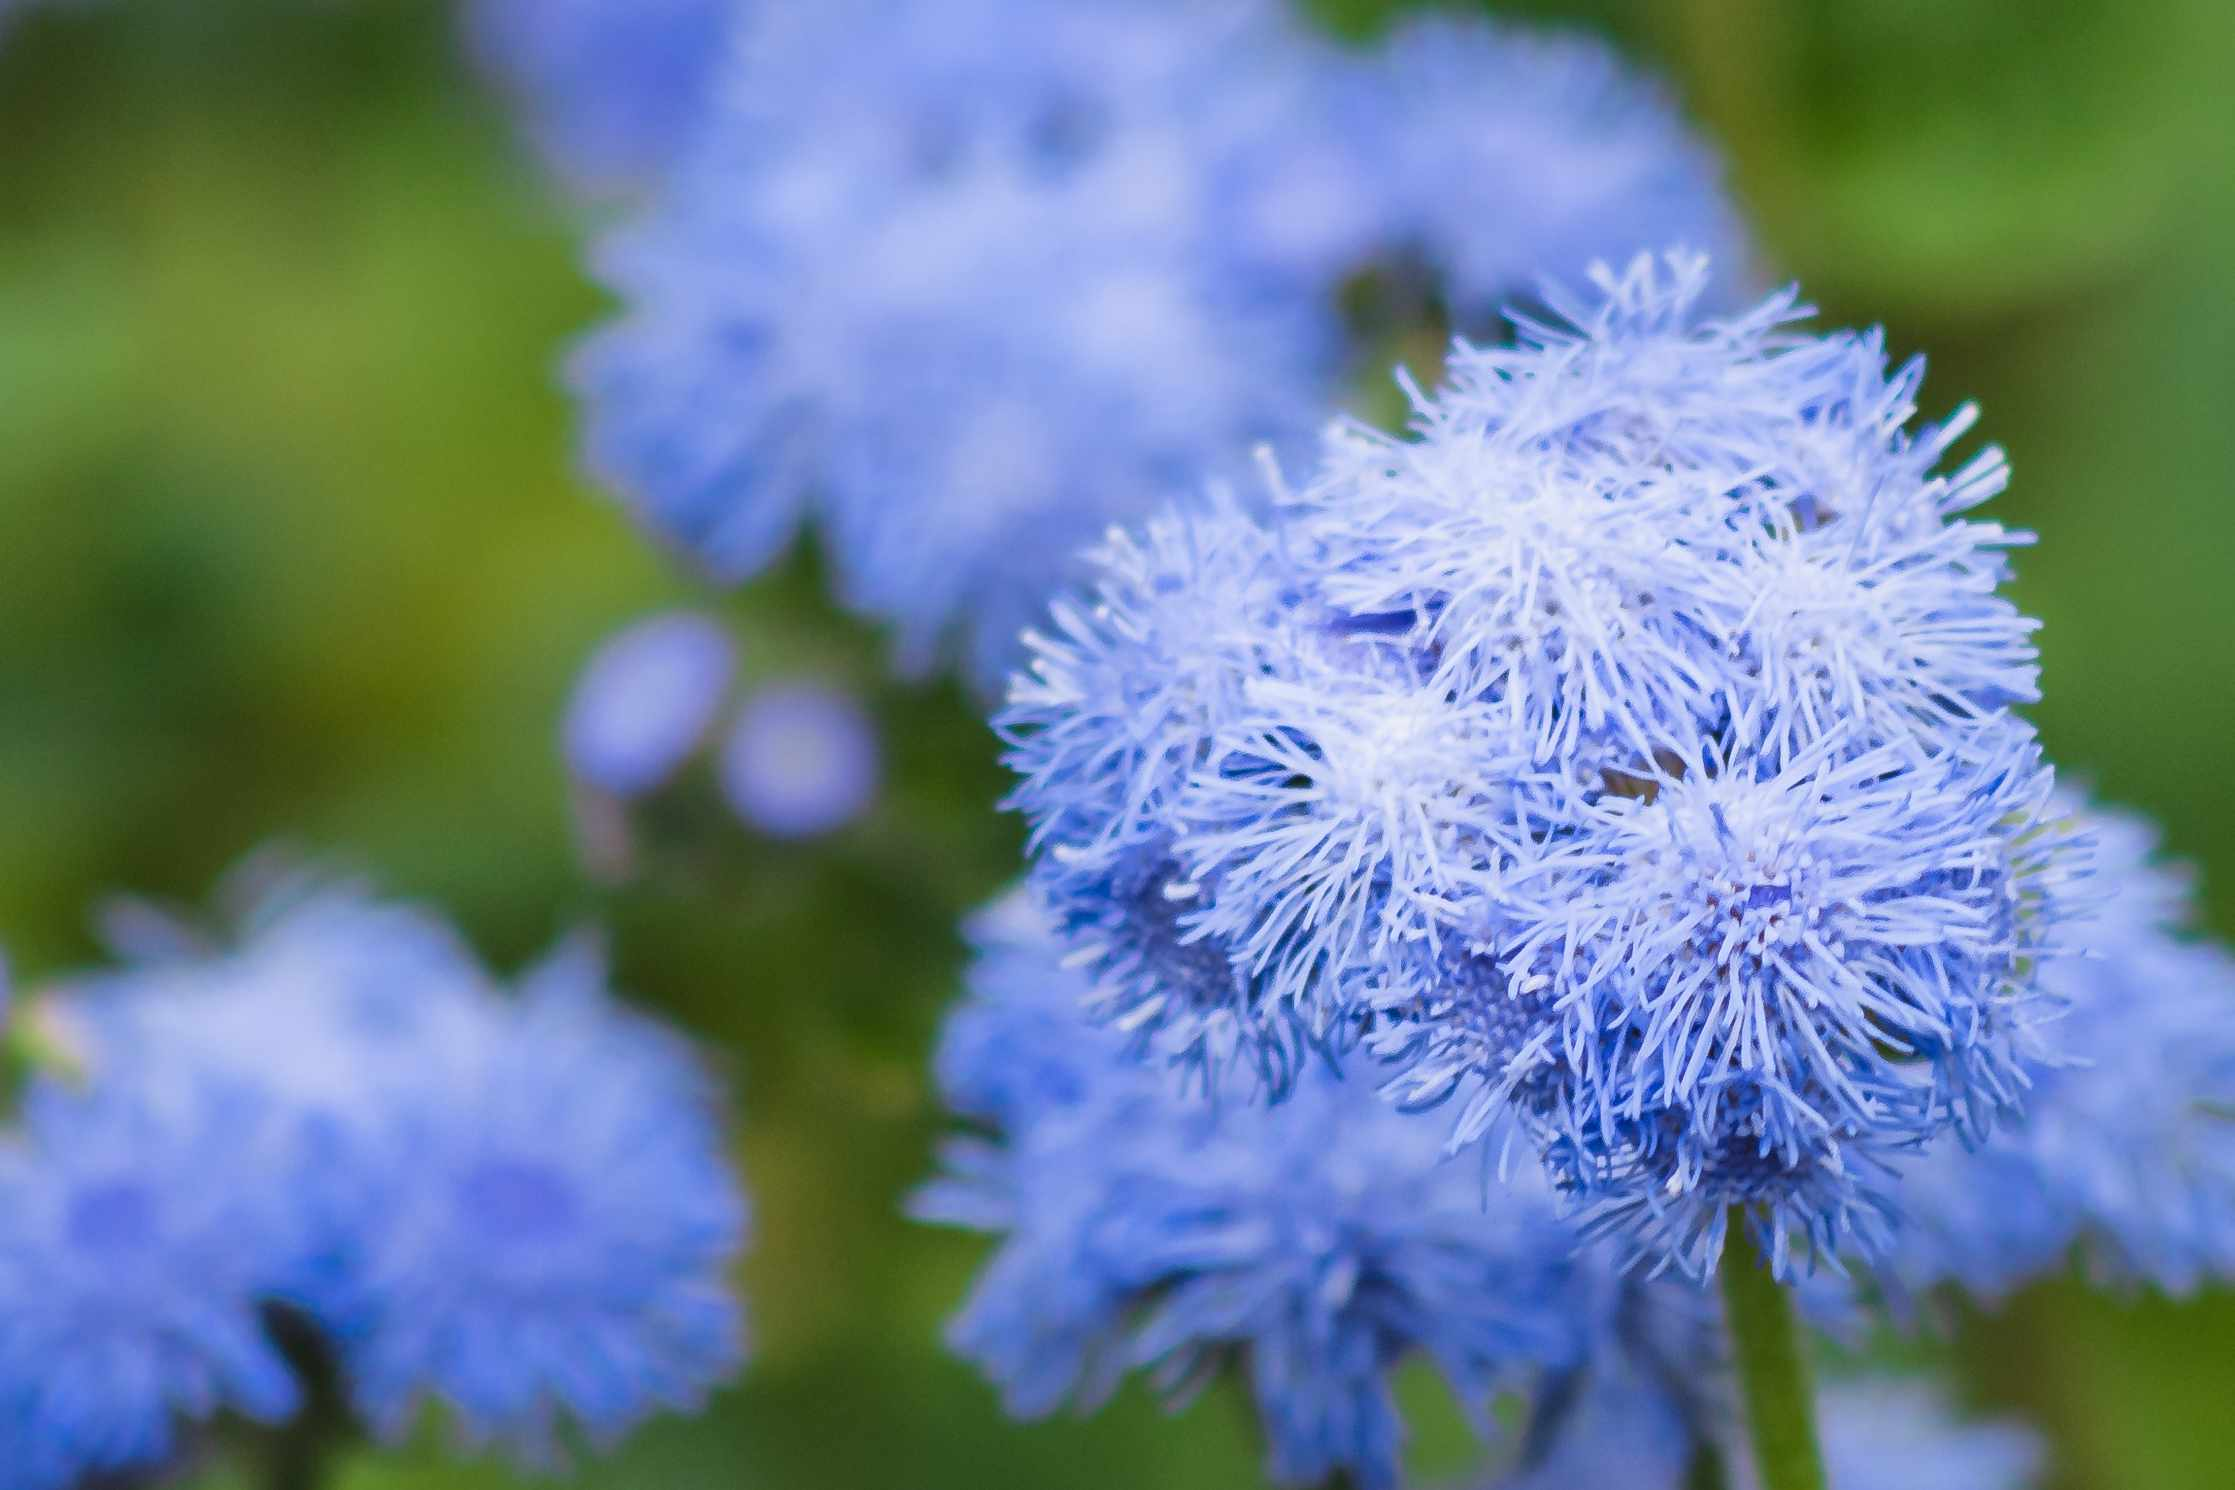 Blue ageratum plant with blue flowers